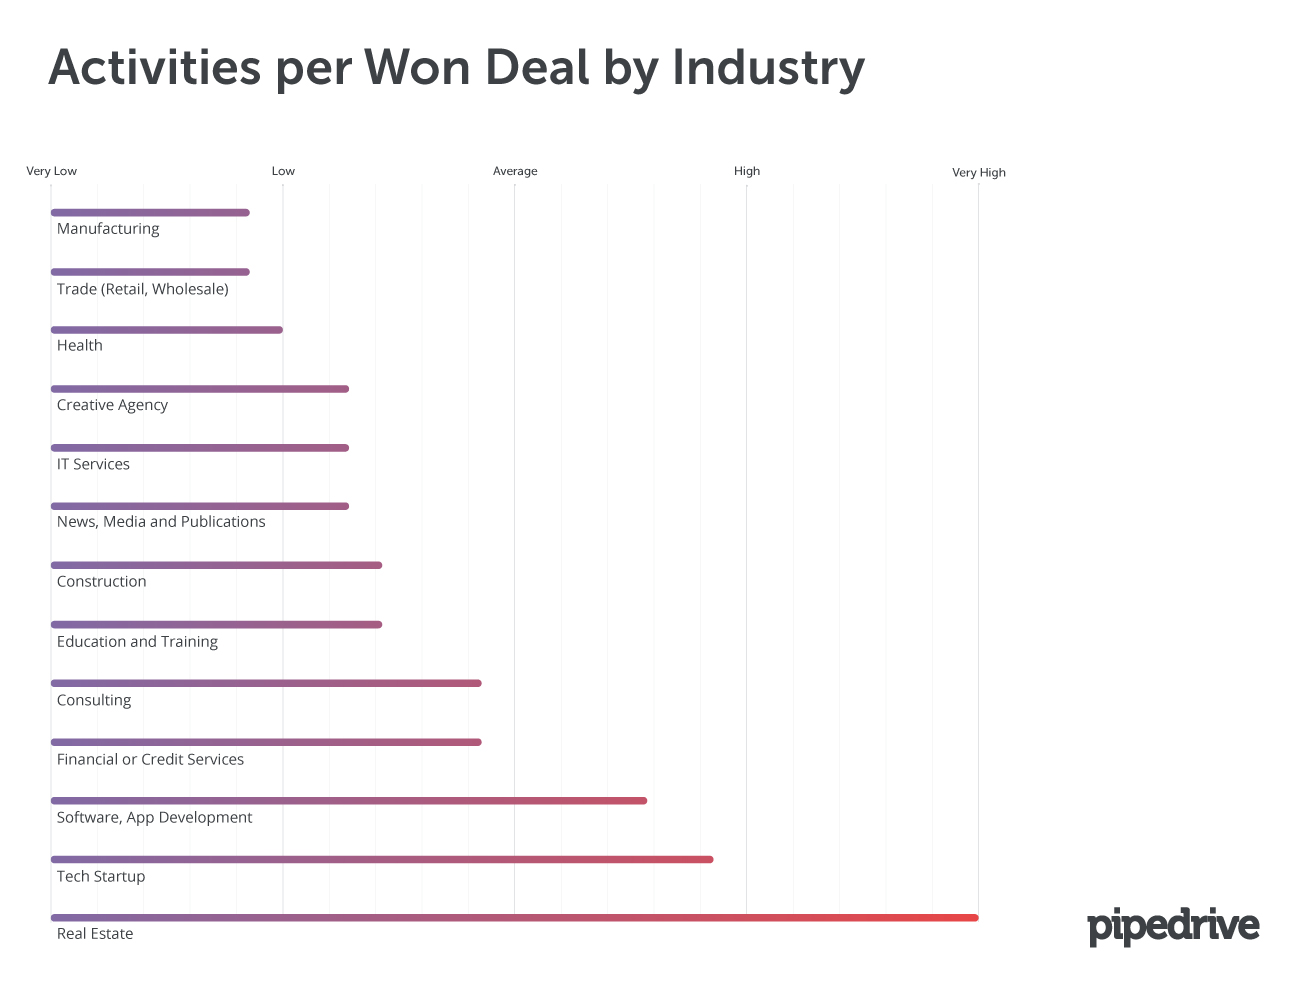 Activities per Won Deal by Industry